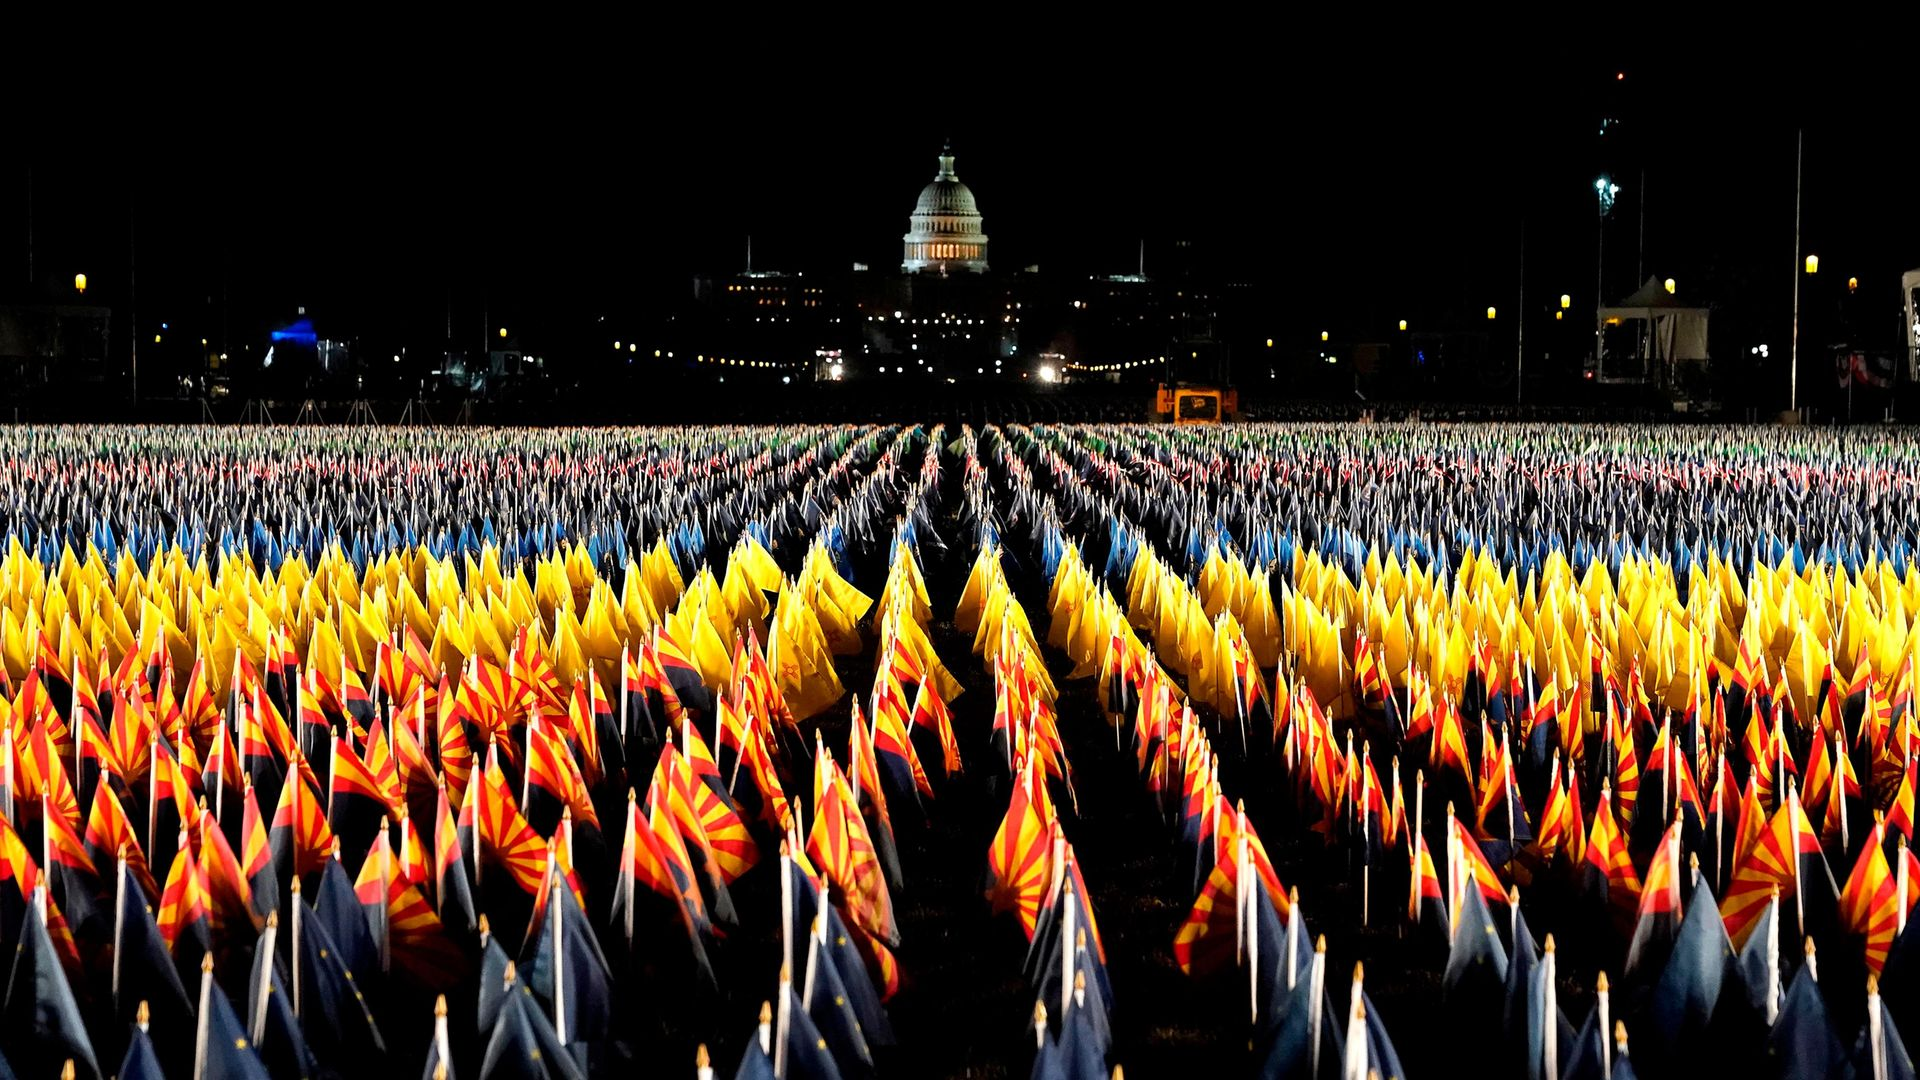 """The """"Field of Flags"""" on Washington DC's National Mall for the presidential inauguration ceremony - Credit: AFP via Getty Images"""